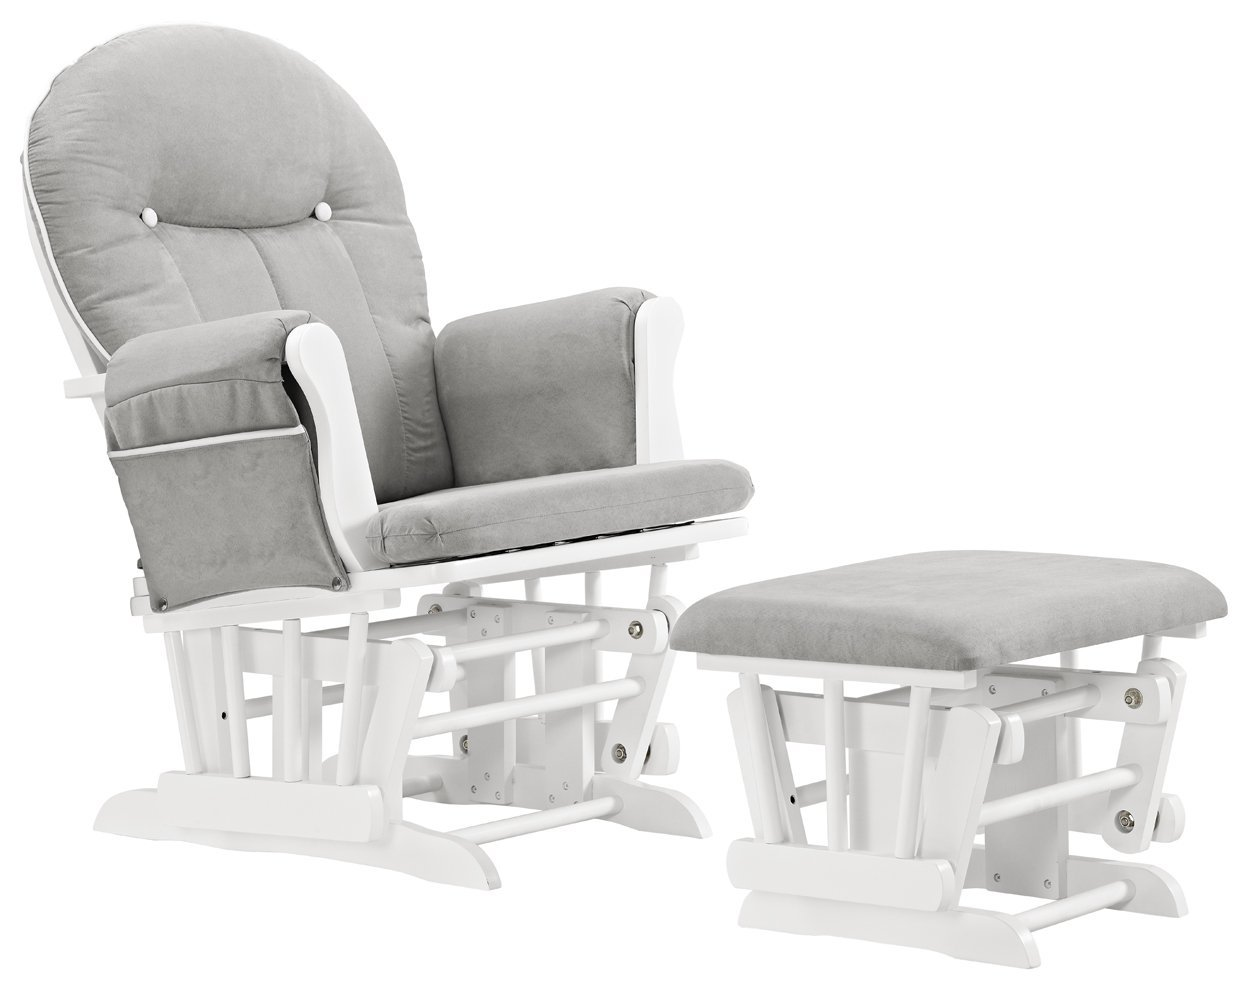 Angel Line Celine Glider and Ottoman, White/Gray Cushion with White Piping by Angel Line